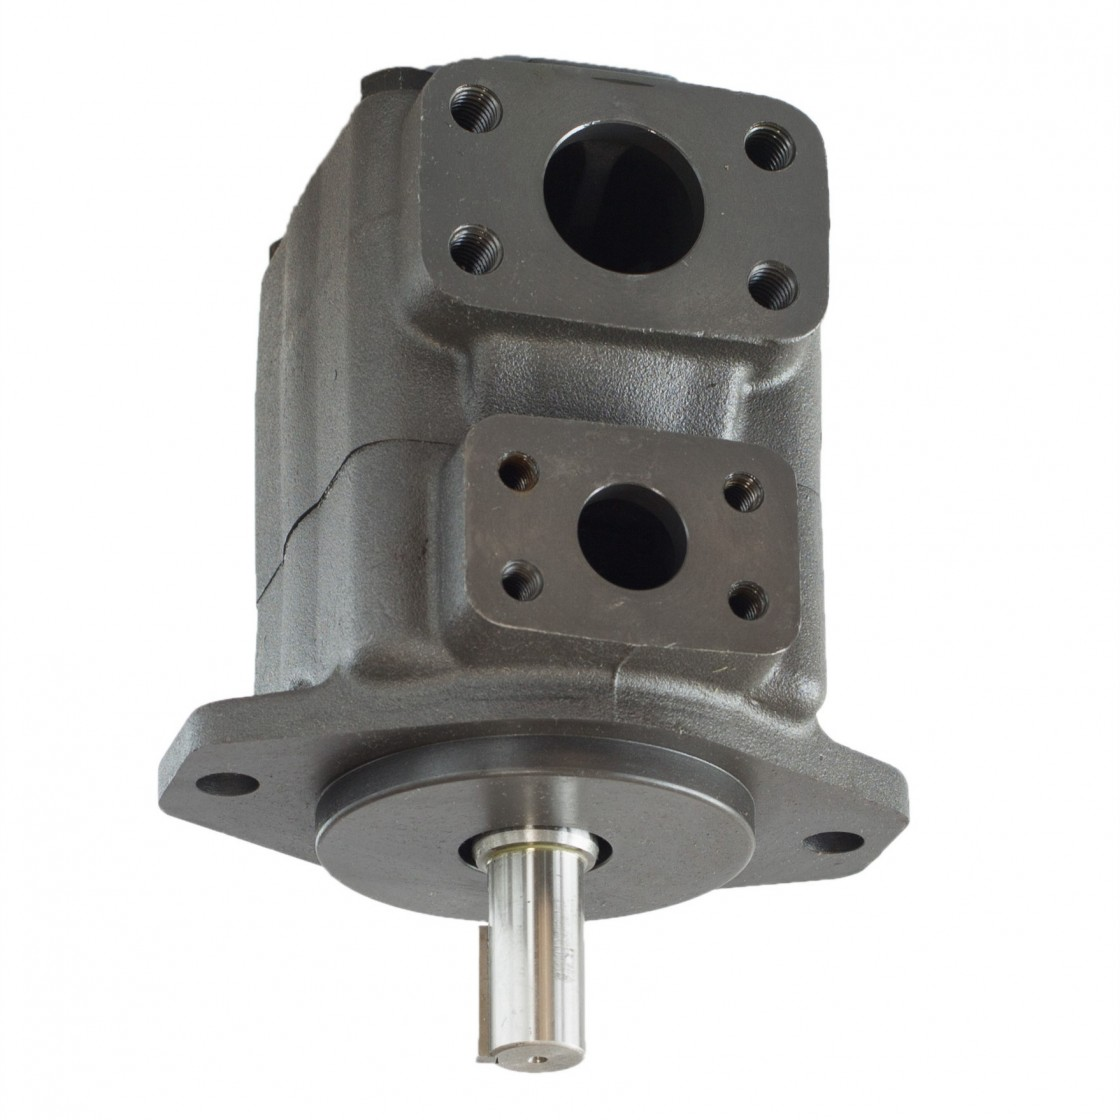 Vickers DG4V-3S-6C-MU-H5-60 Solenoid Operated Directional Valve